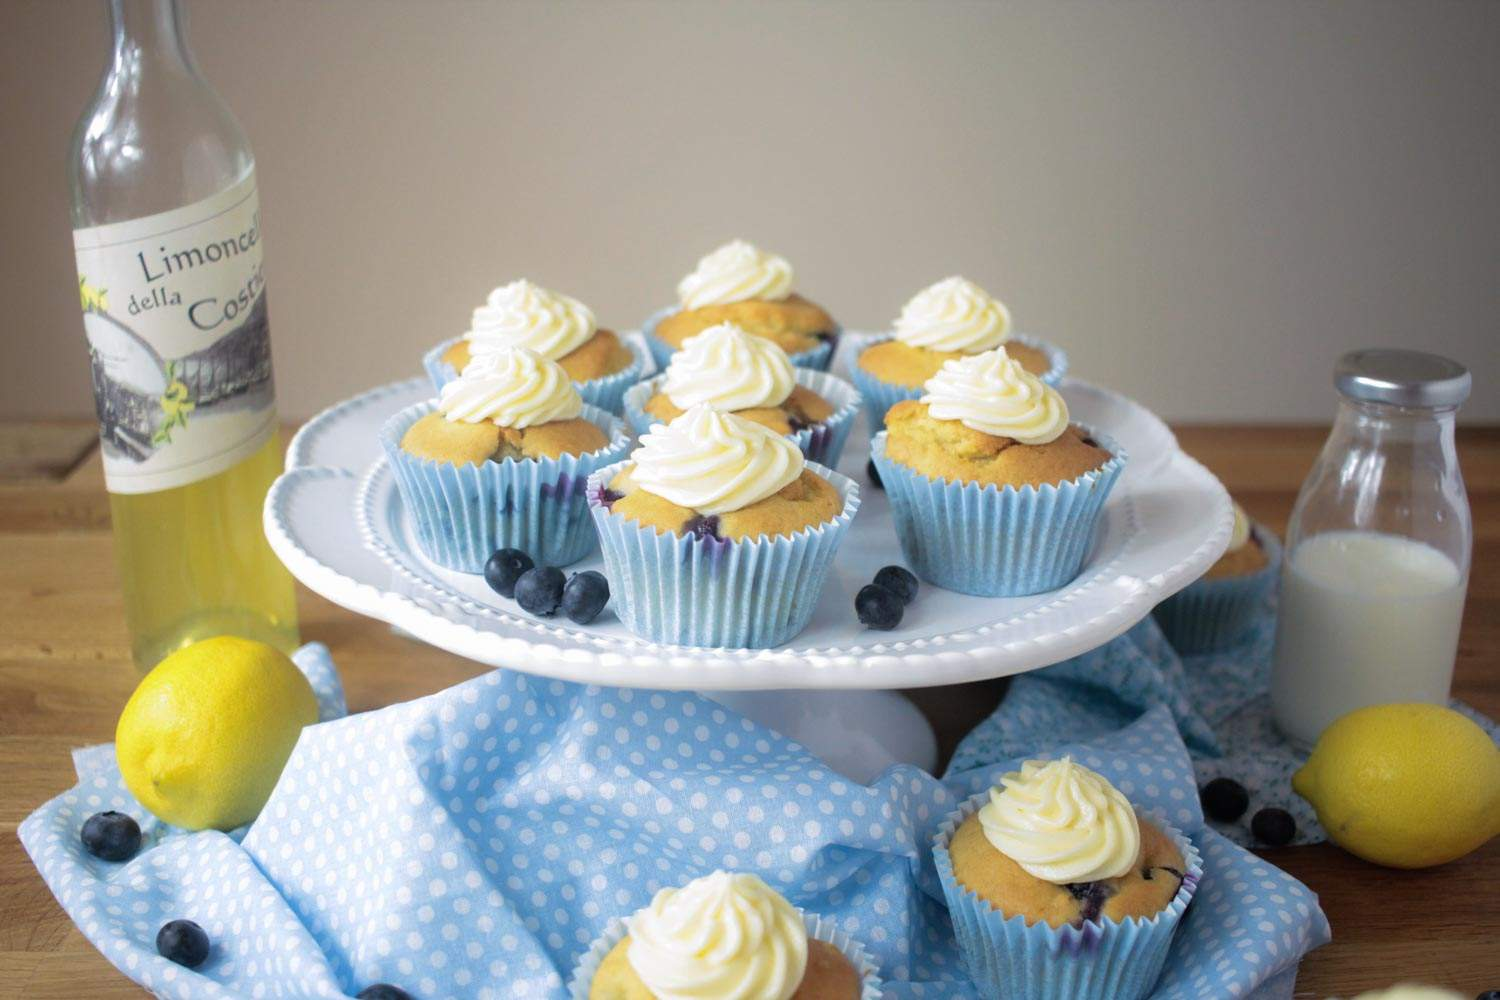 Blueberry and Lemon Muffins with a Limoncello Frosting-1 - Globe Scoffers | globescoffers.com